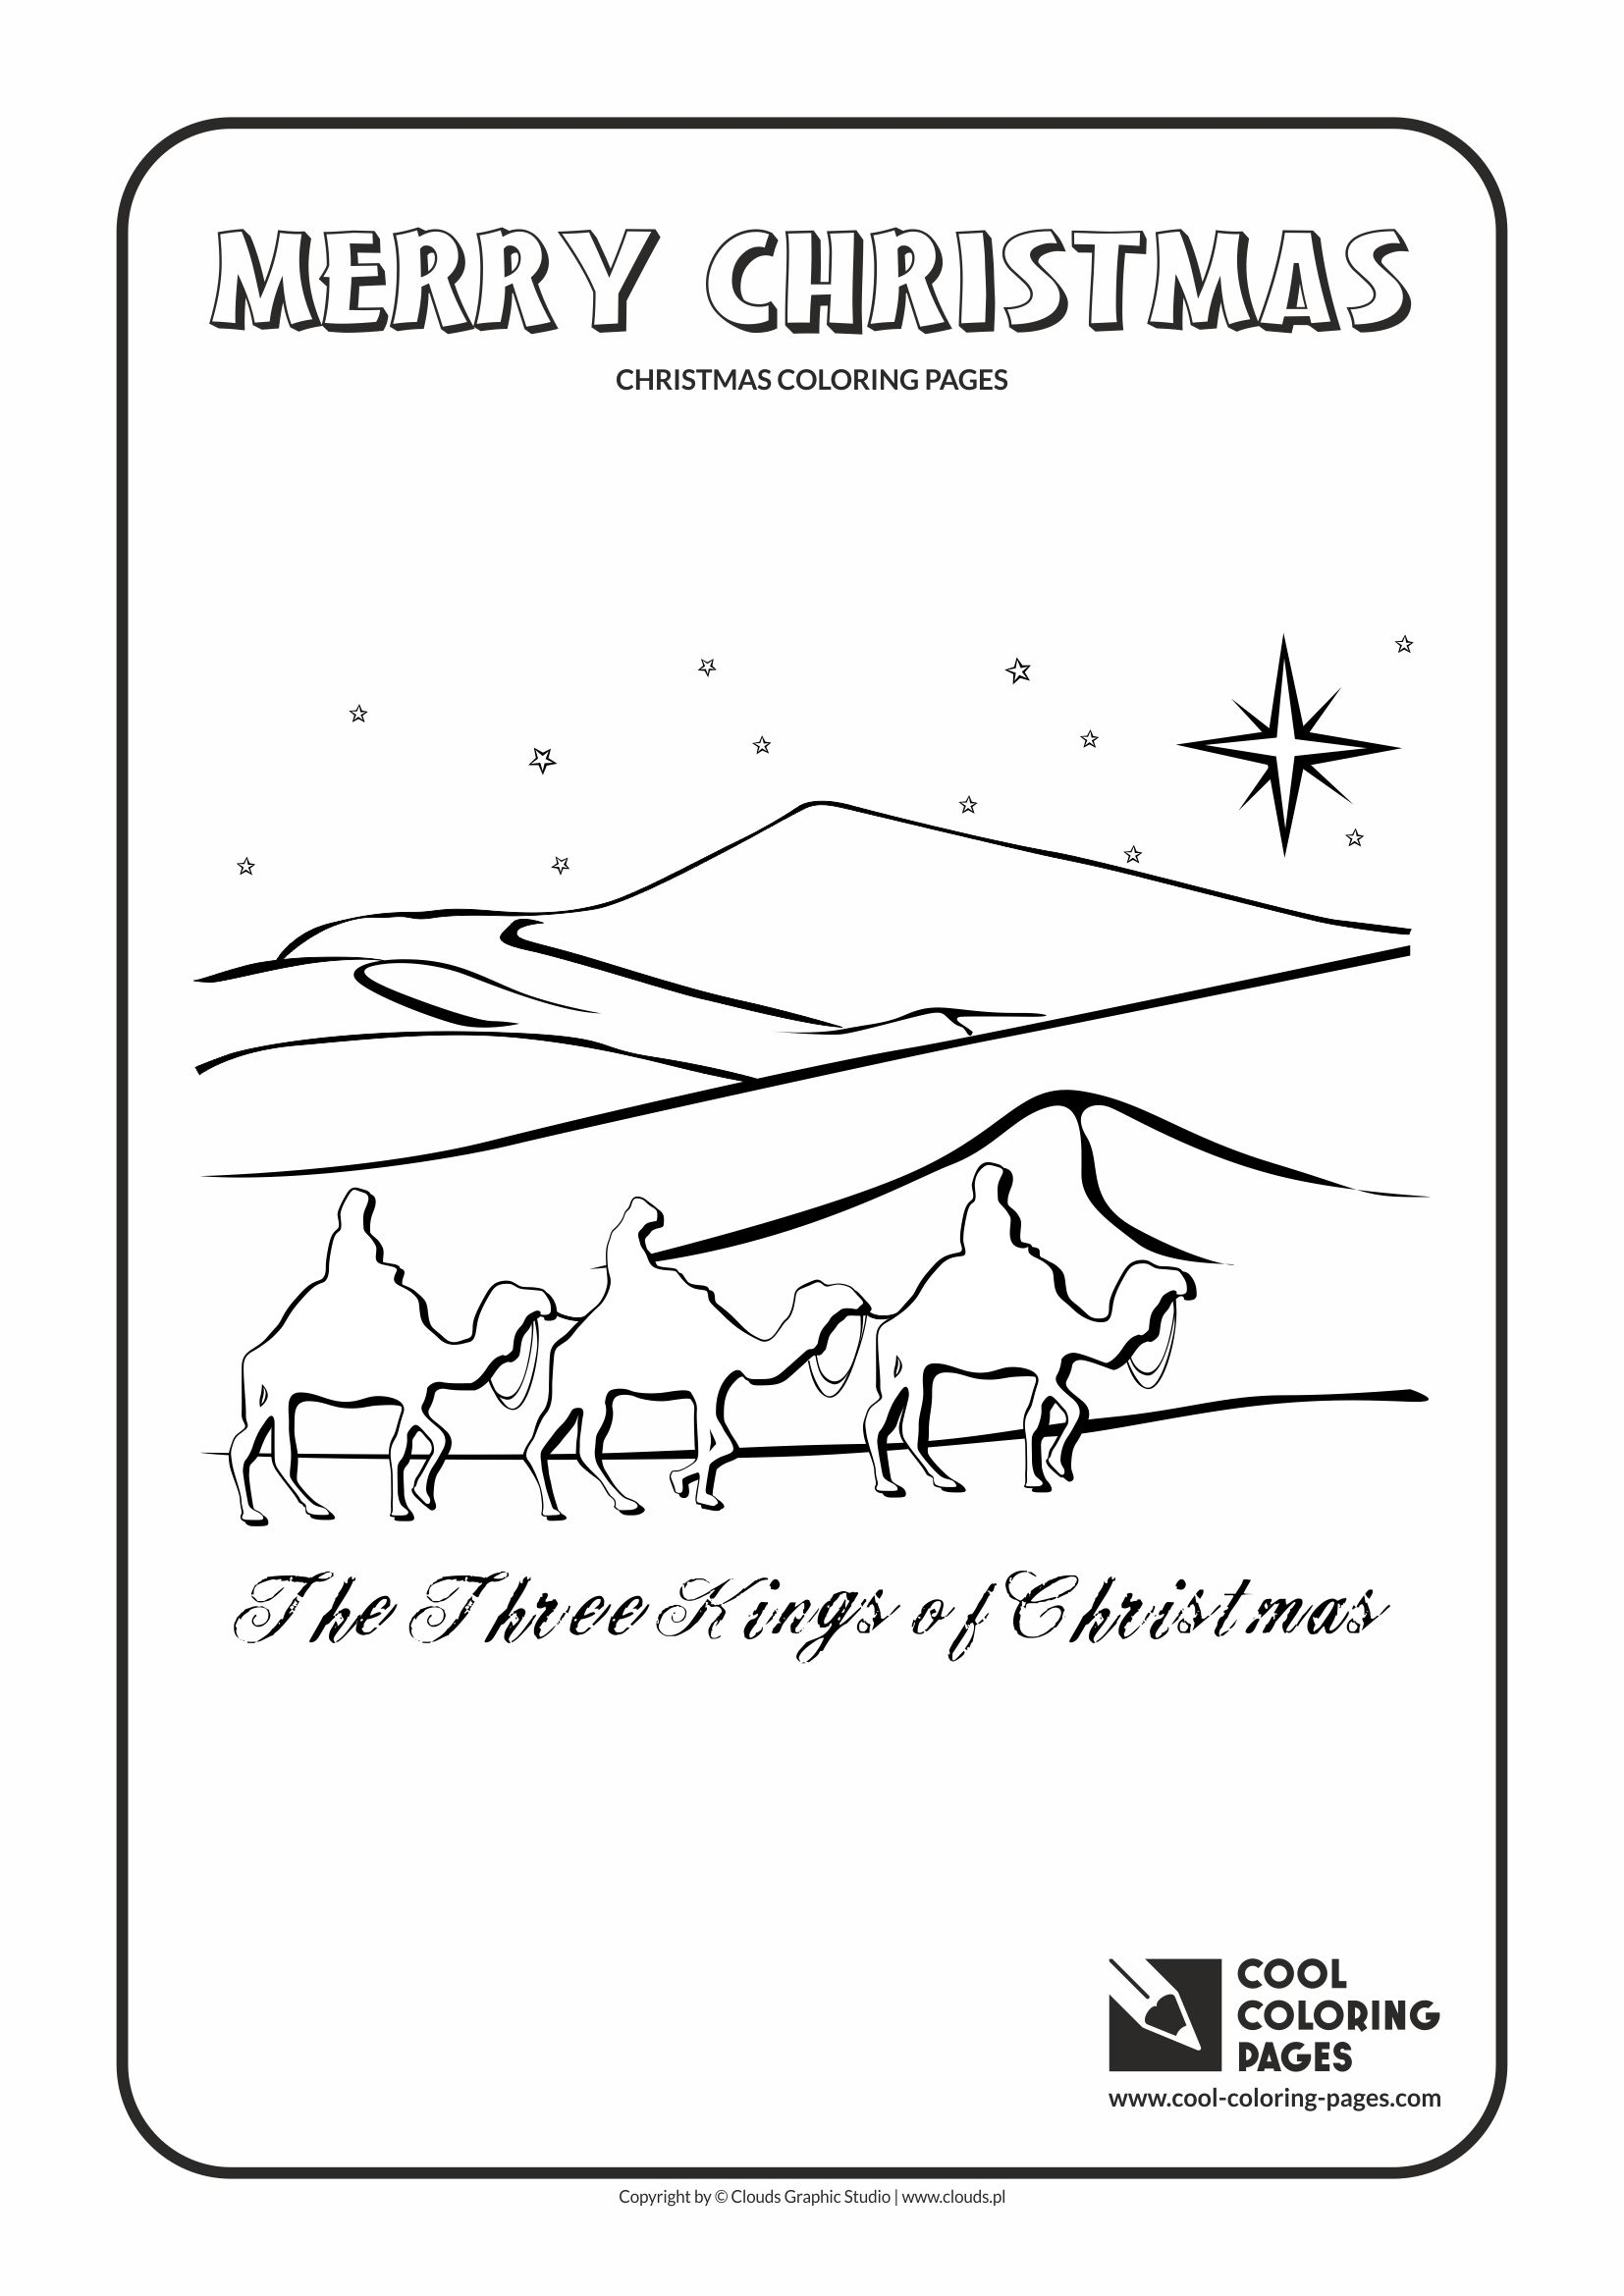 3 kings coloring pages